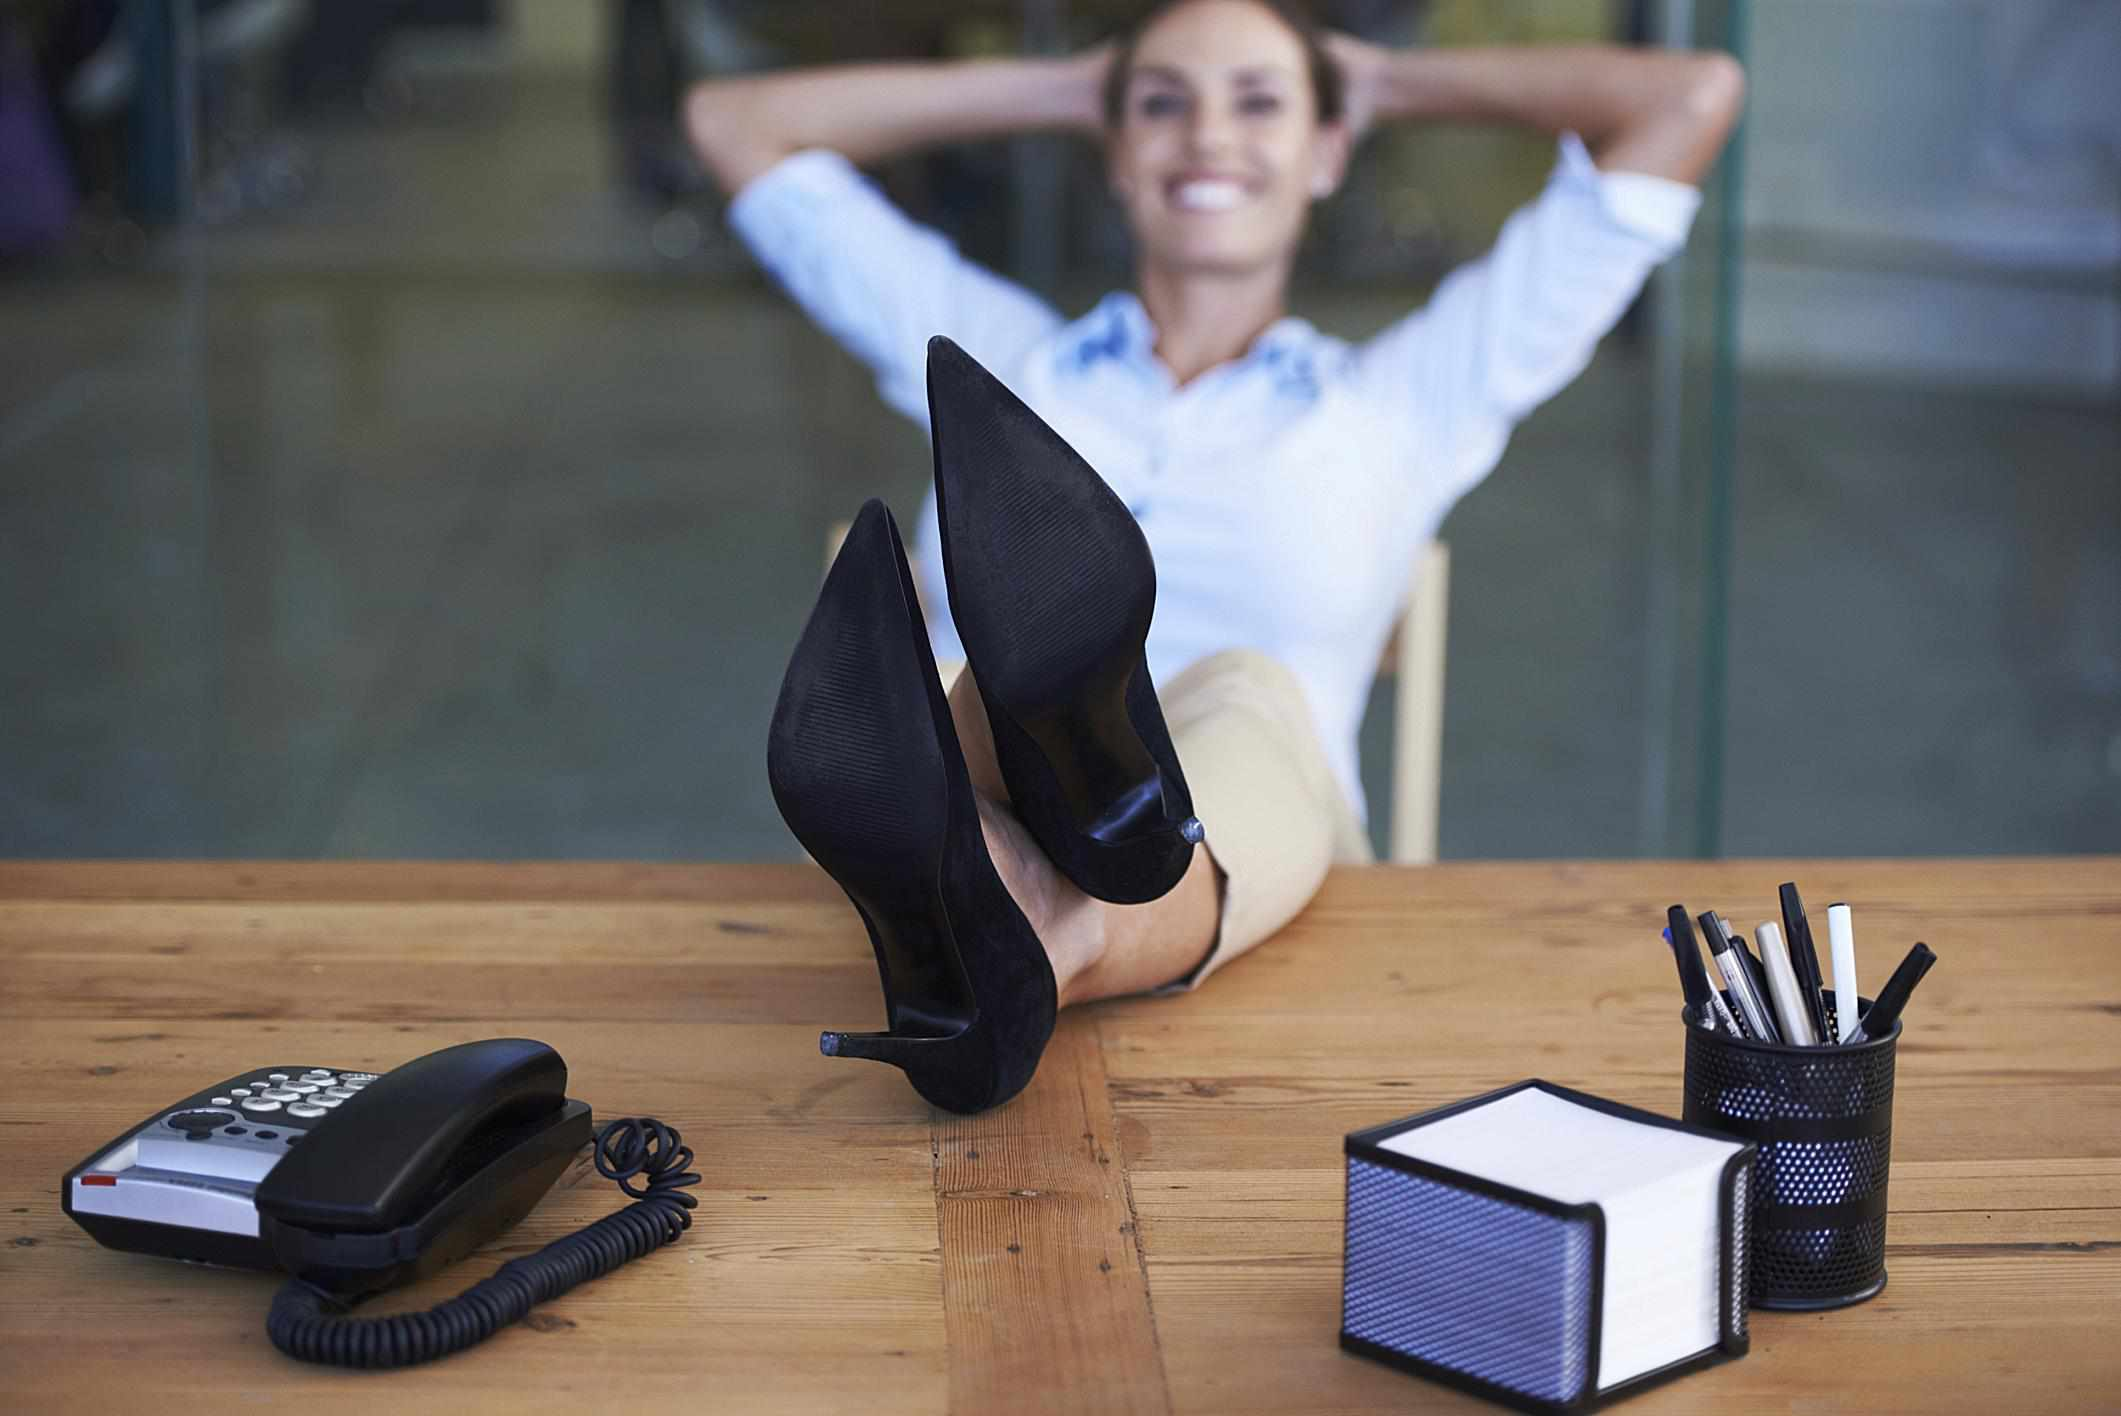 A woman sitting with her legs on a desk